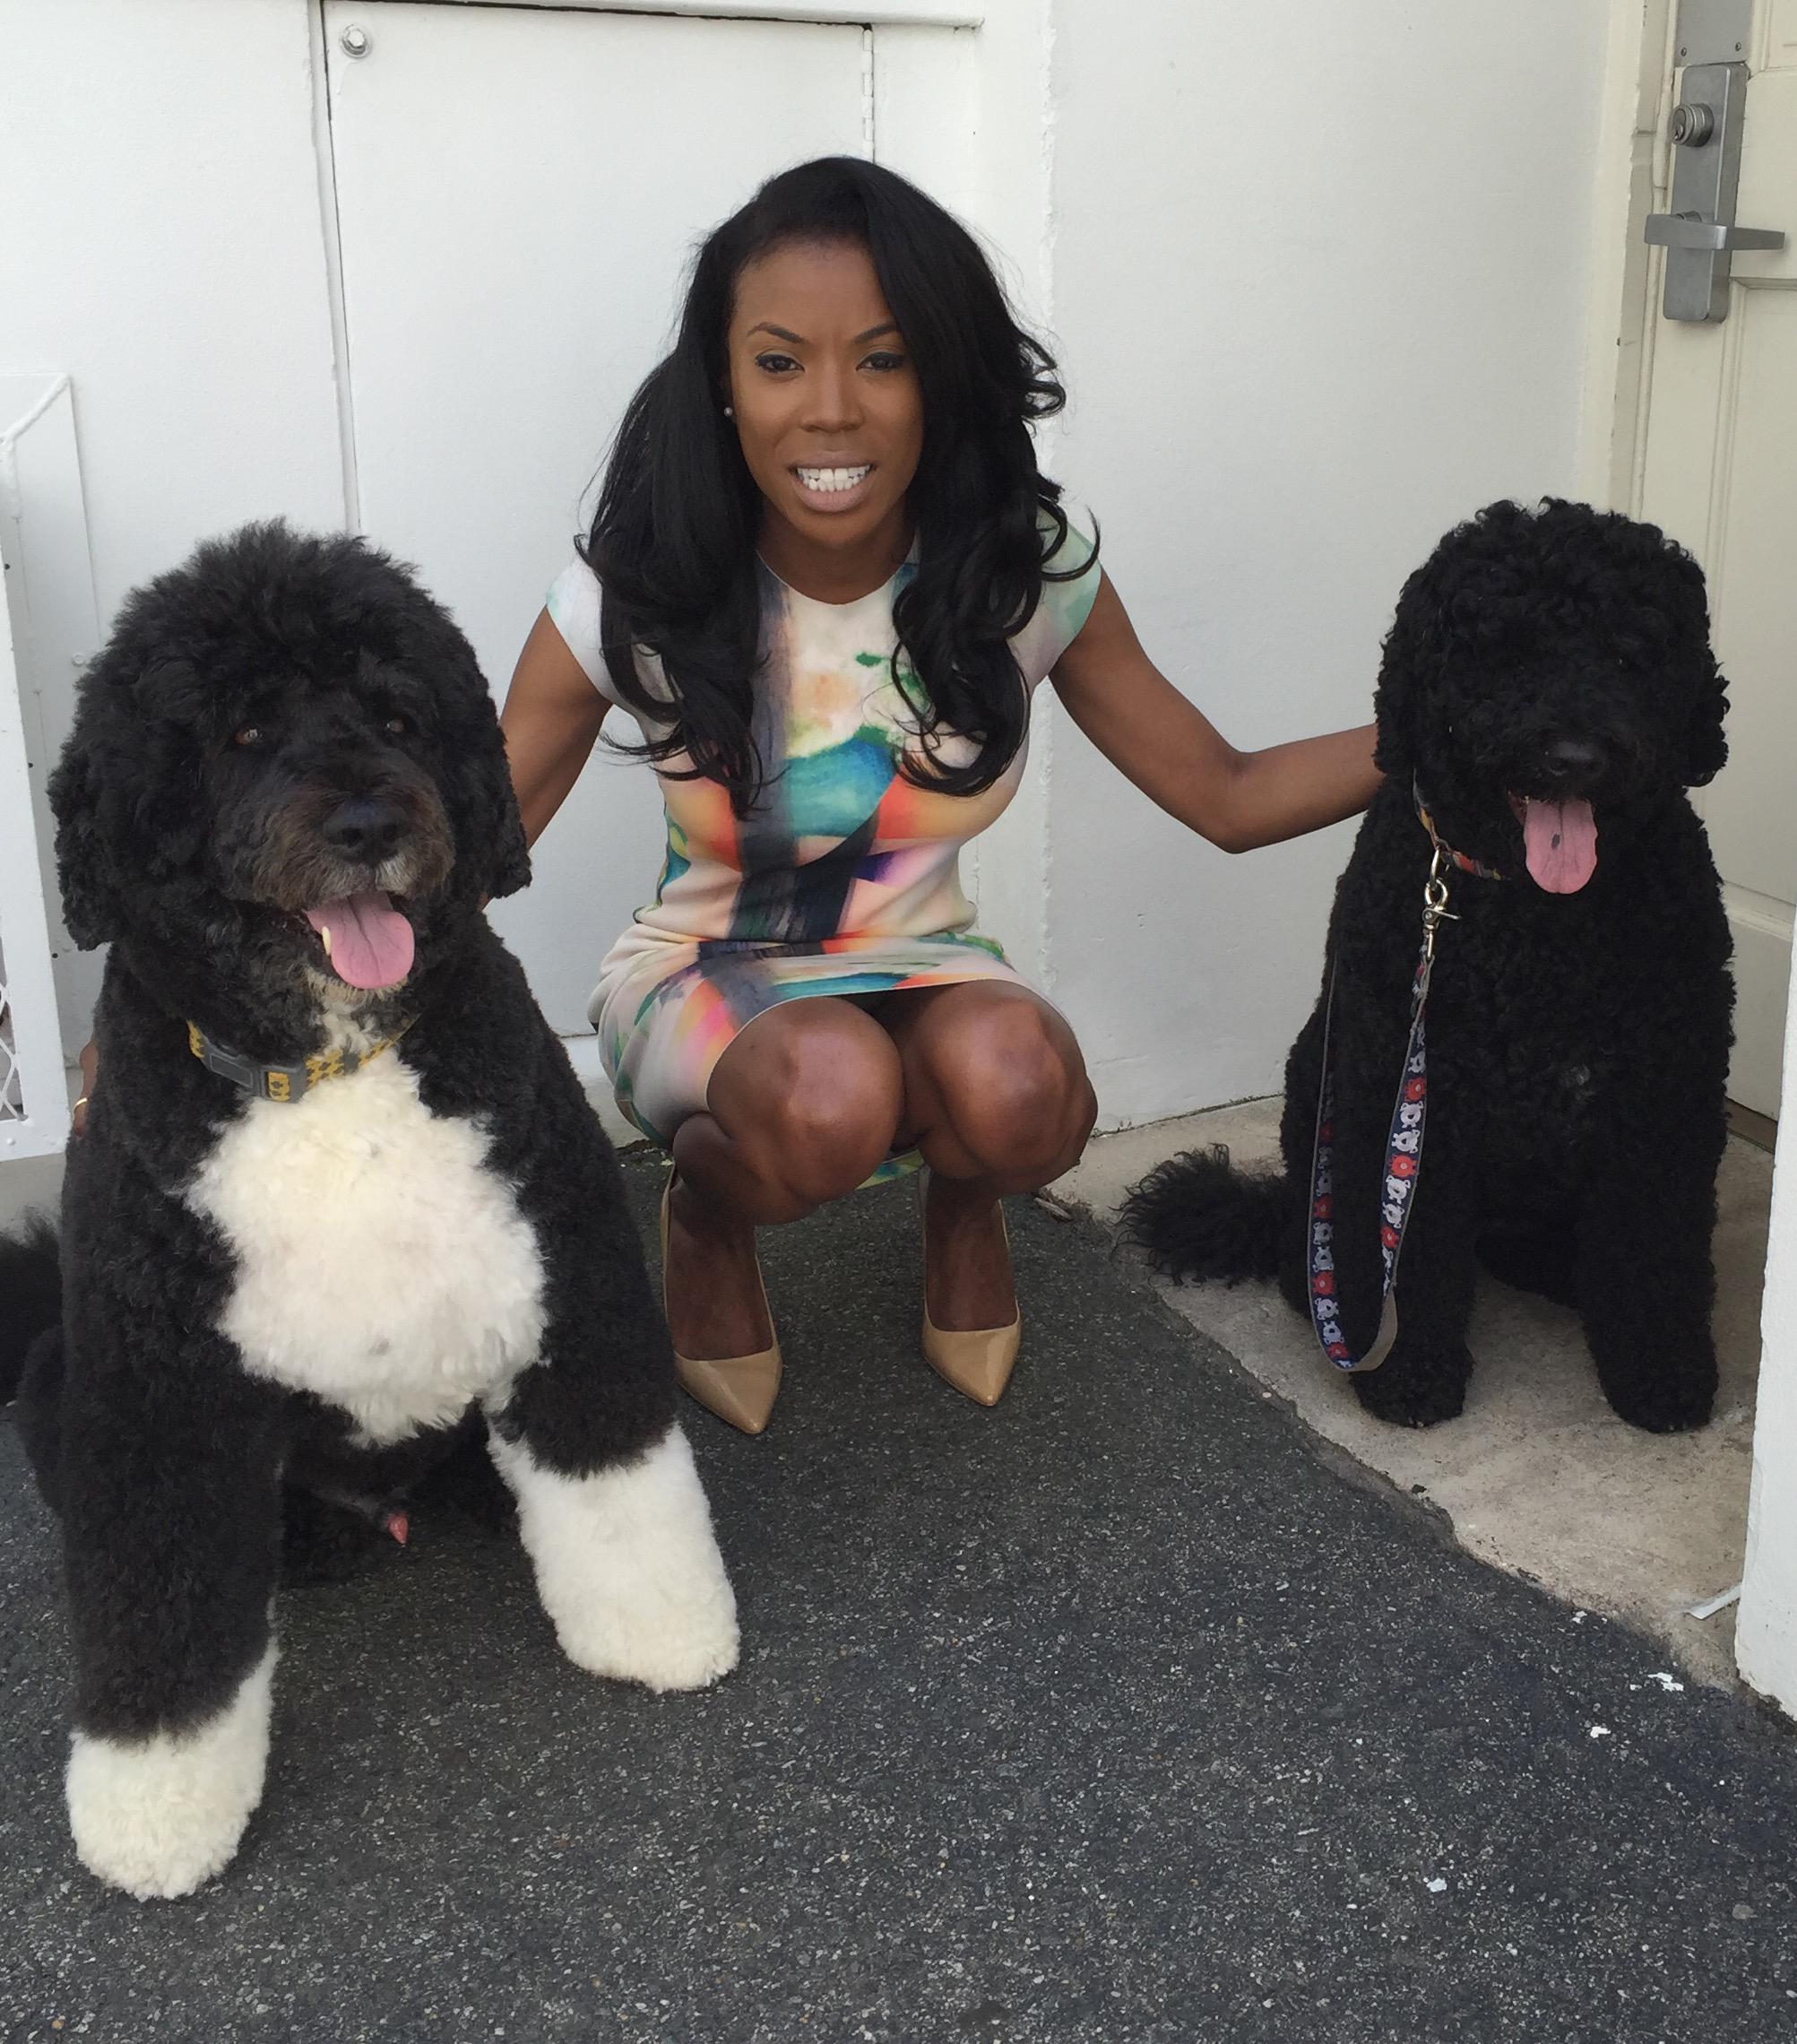 Photo credit: Jerry Zremski/The Buffalo News Cutline for the fourth pic: Desiree Barnes of Amherst finds that one of the fringe benefits of working at the White House is time spent with the Obama family dogs, Bo and Sunny.